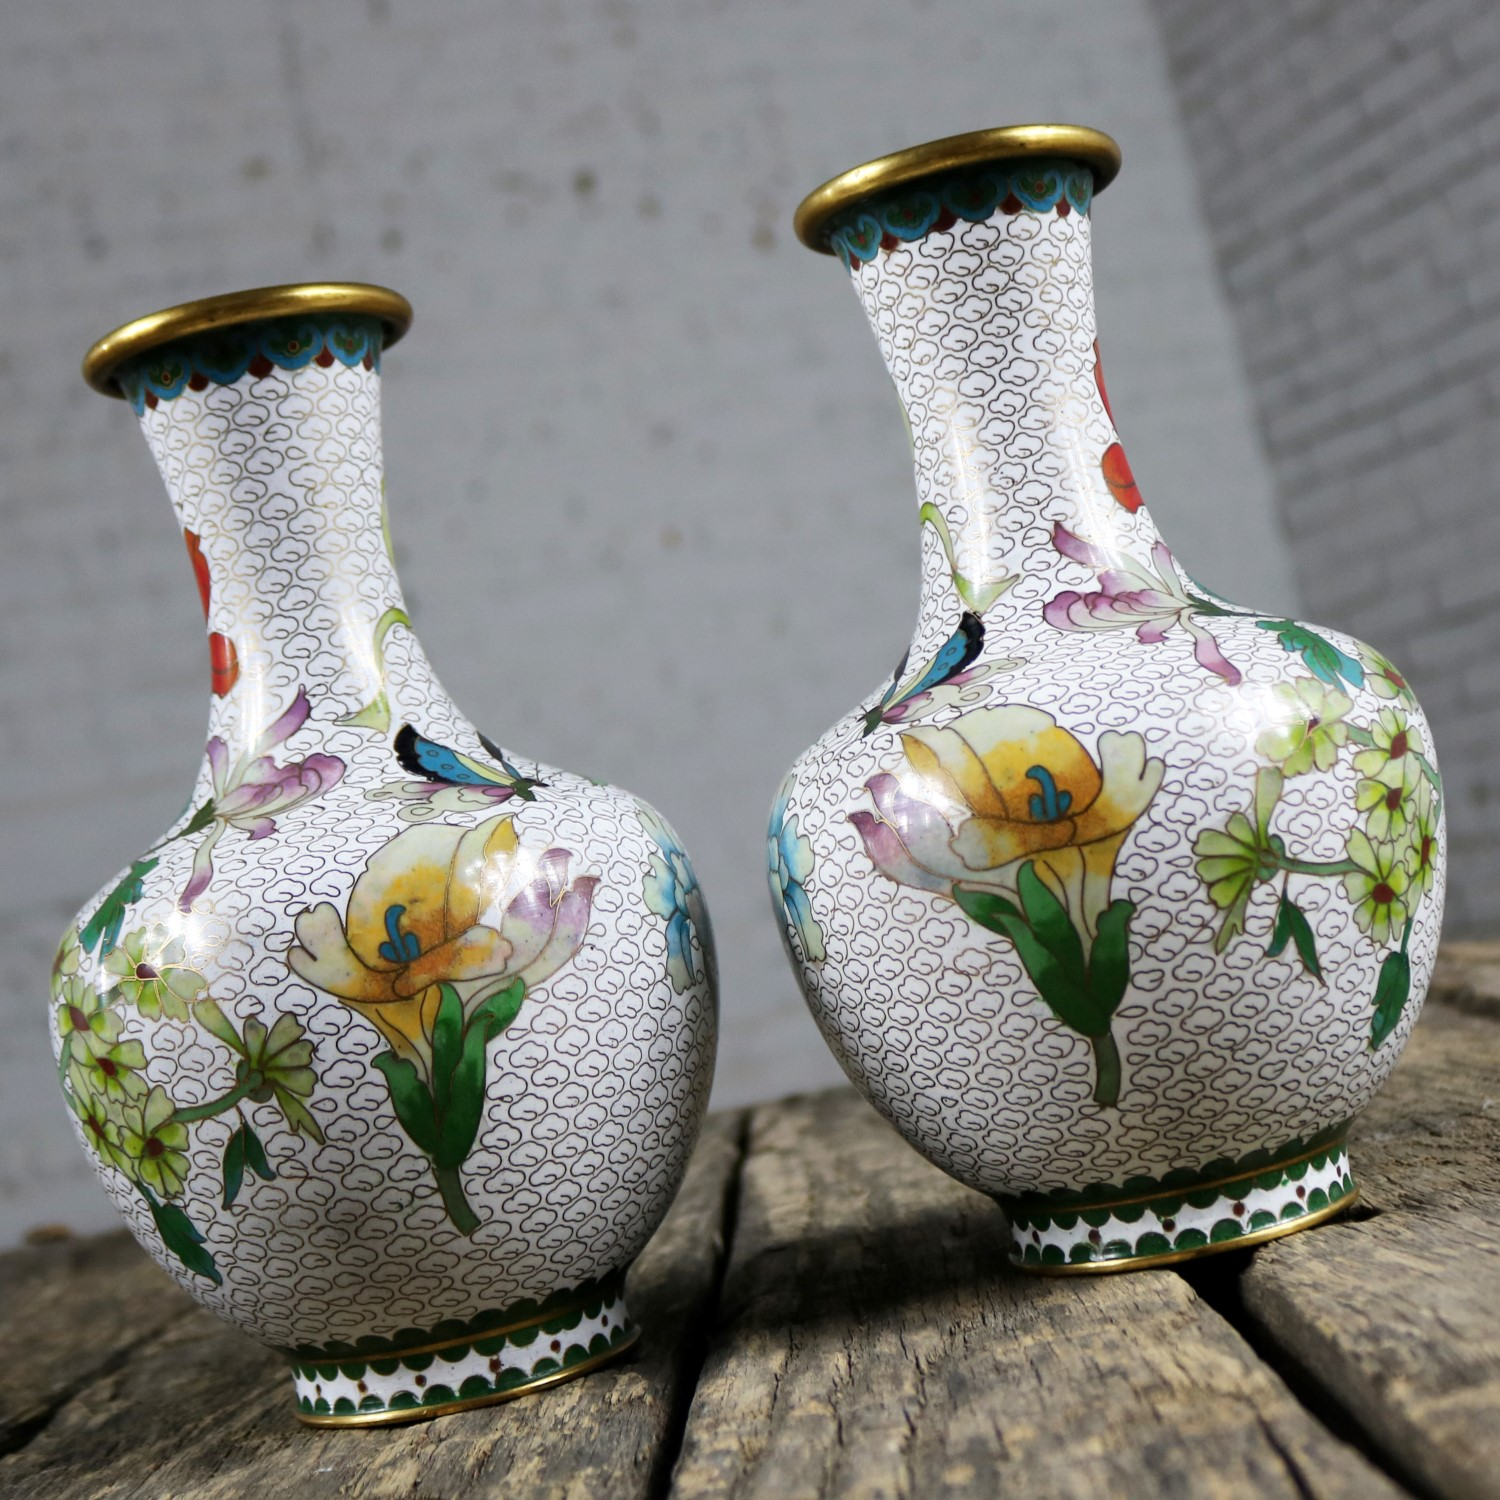 Pair Of Mirrored Design White Cloisonn Vases With Multi Colored